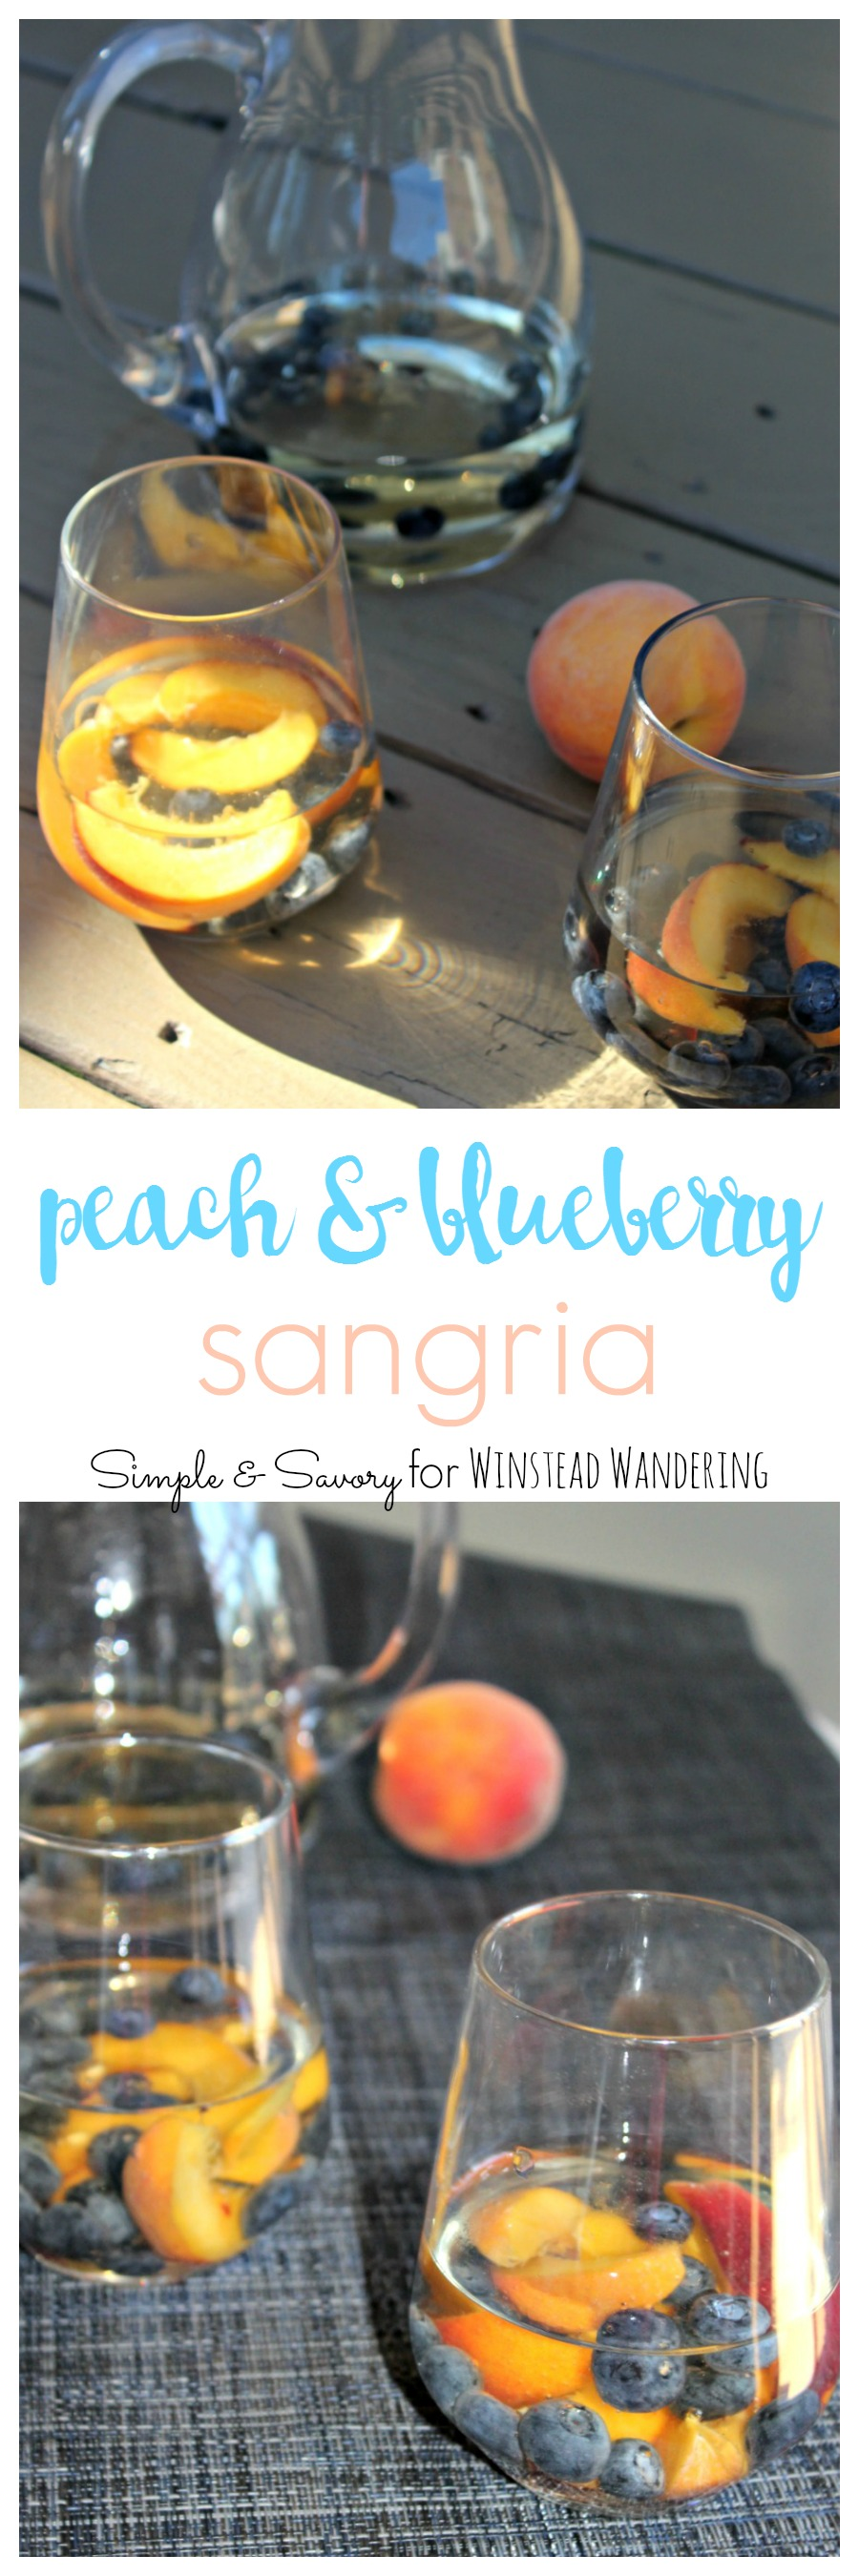 Using white wine instead of red, this peach and blueberry sangria is a refreshing new twist on an old summer favorite.